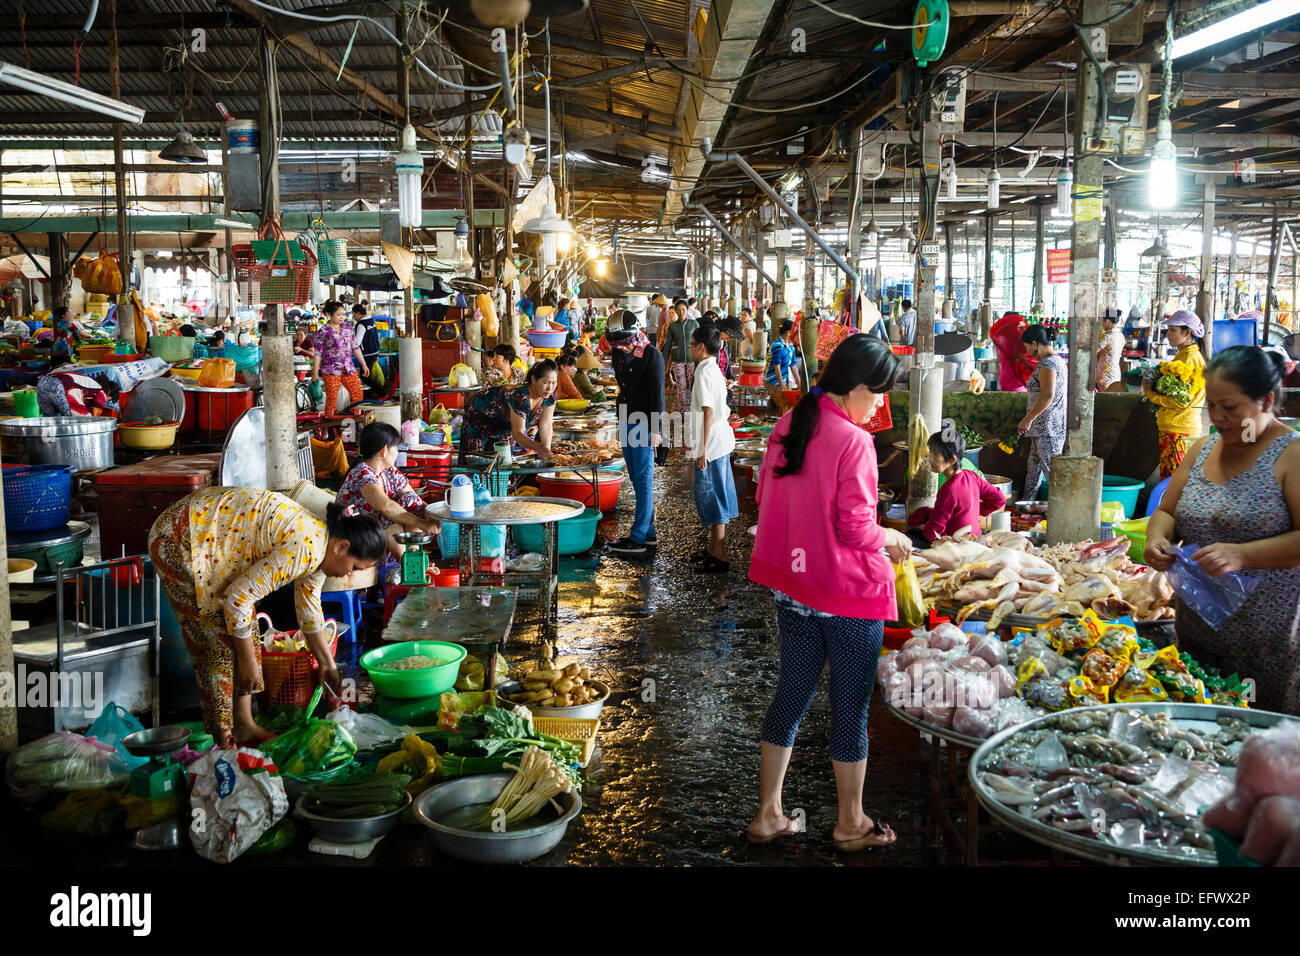 Can Tho Market, Mekong Delta, Vietnam - Stock Image